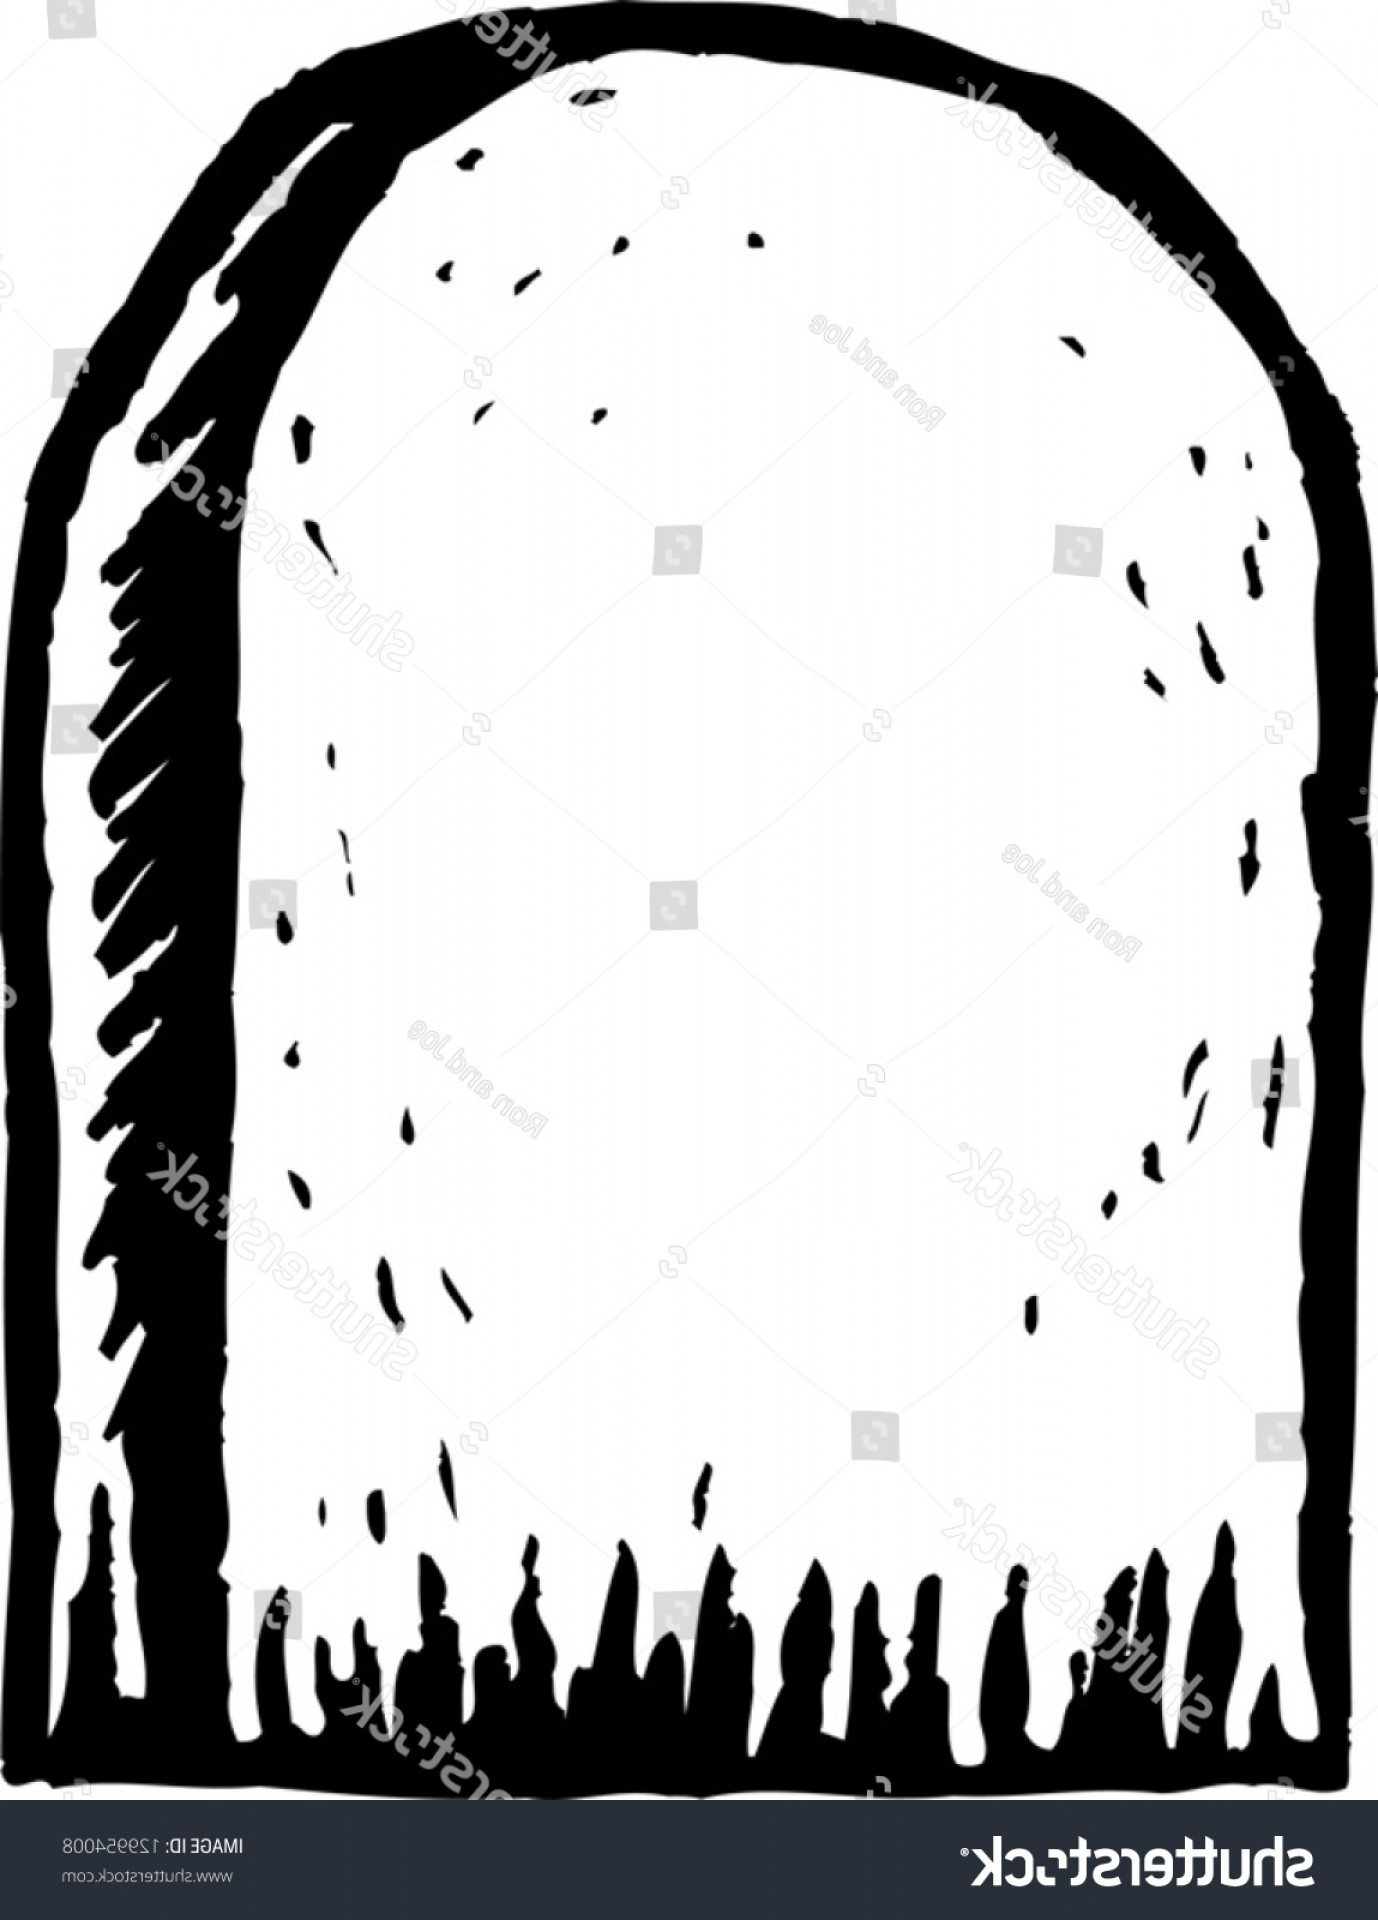 Gravestone Black And Whit Vector JPEG: Black White Vector Illustration Tombstone